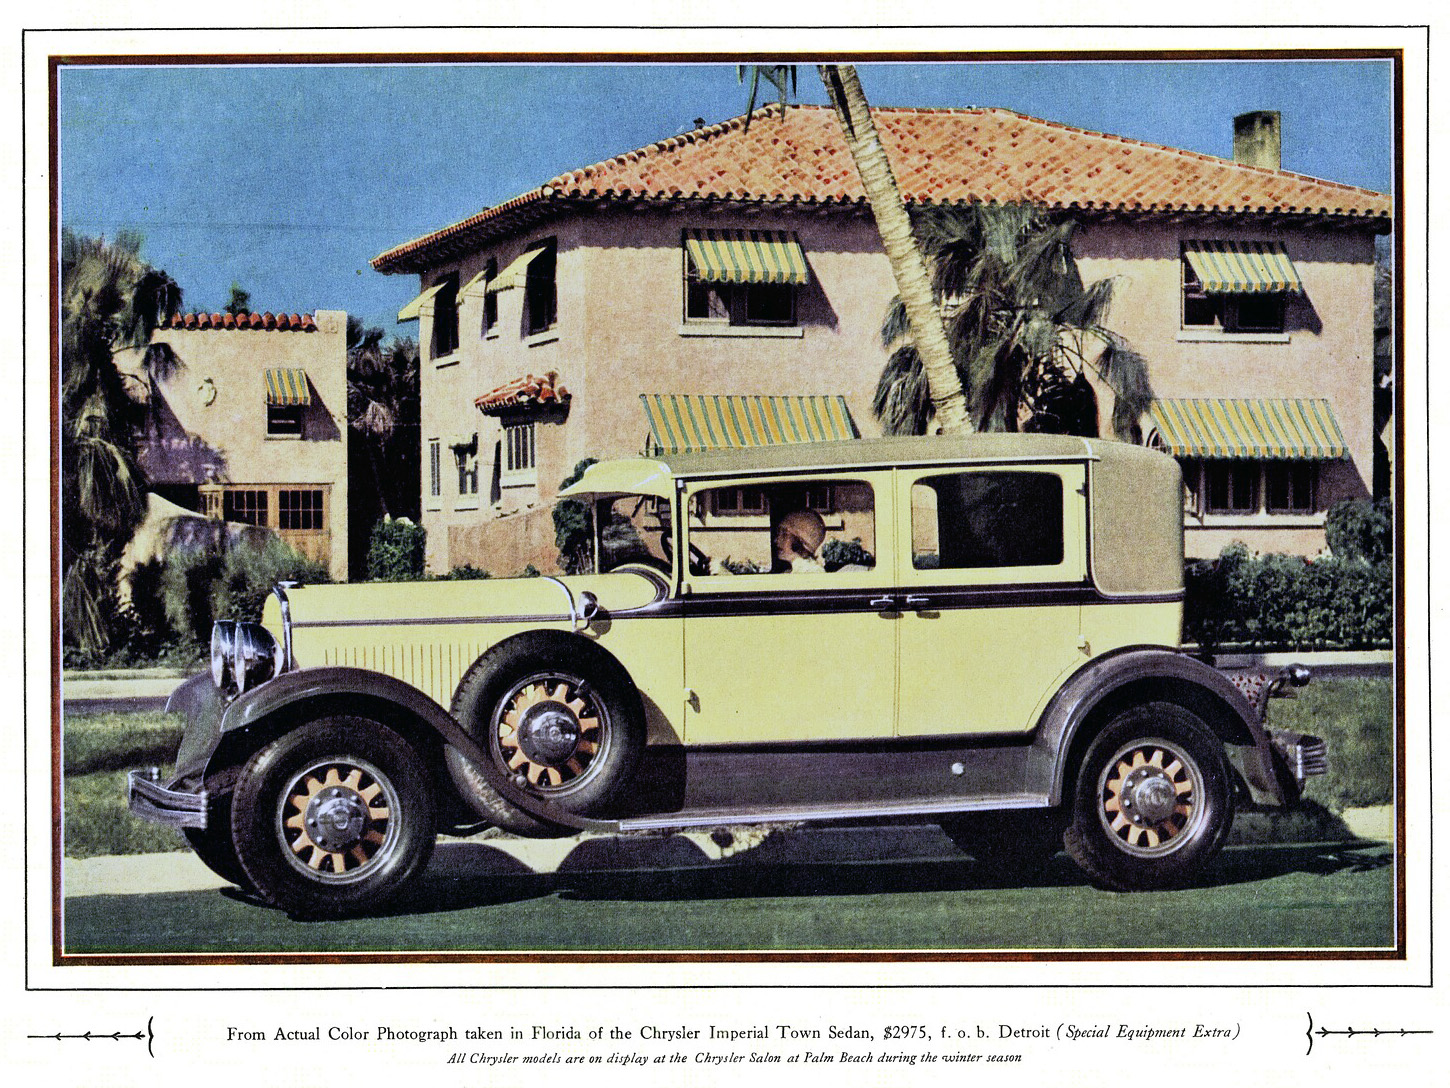 1929 Chrysler Imperial Town Sedan